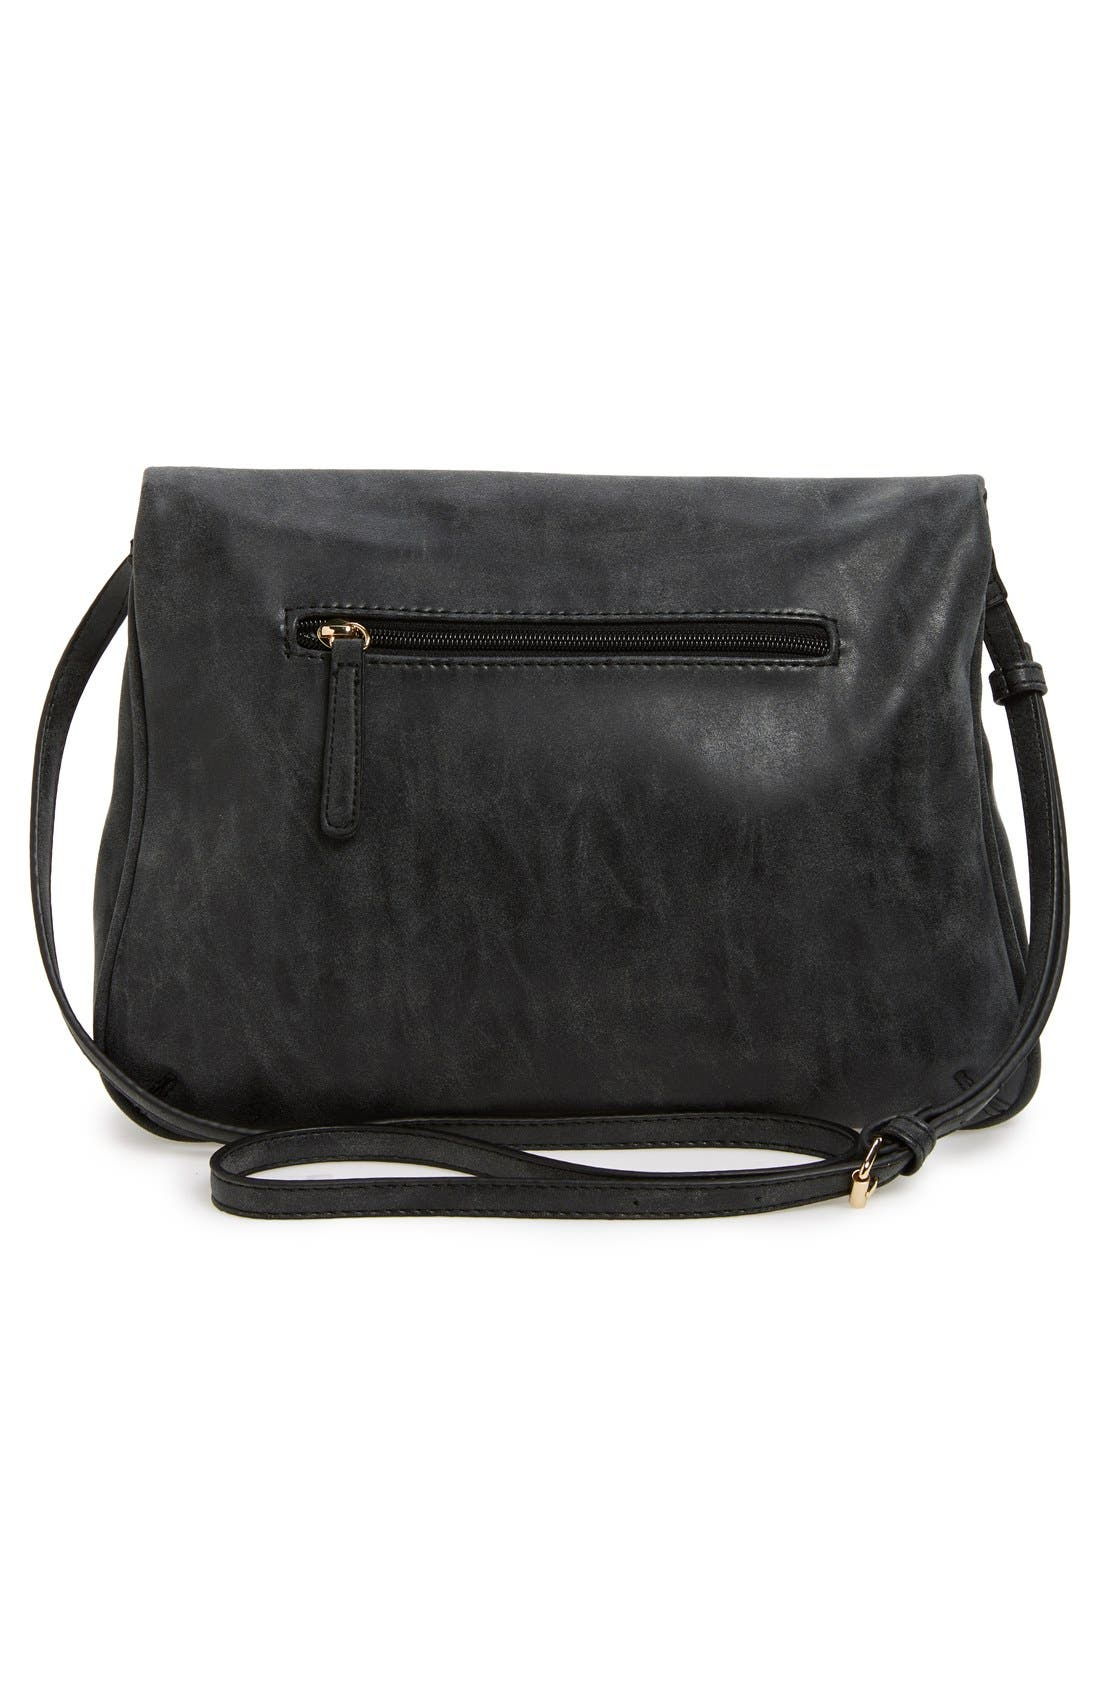 Alternate Image 3  - Emperia 'Layla' Faux Leather Tassel Flap Crossbody Bag